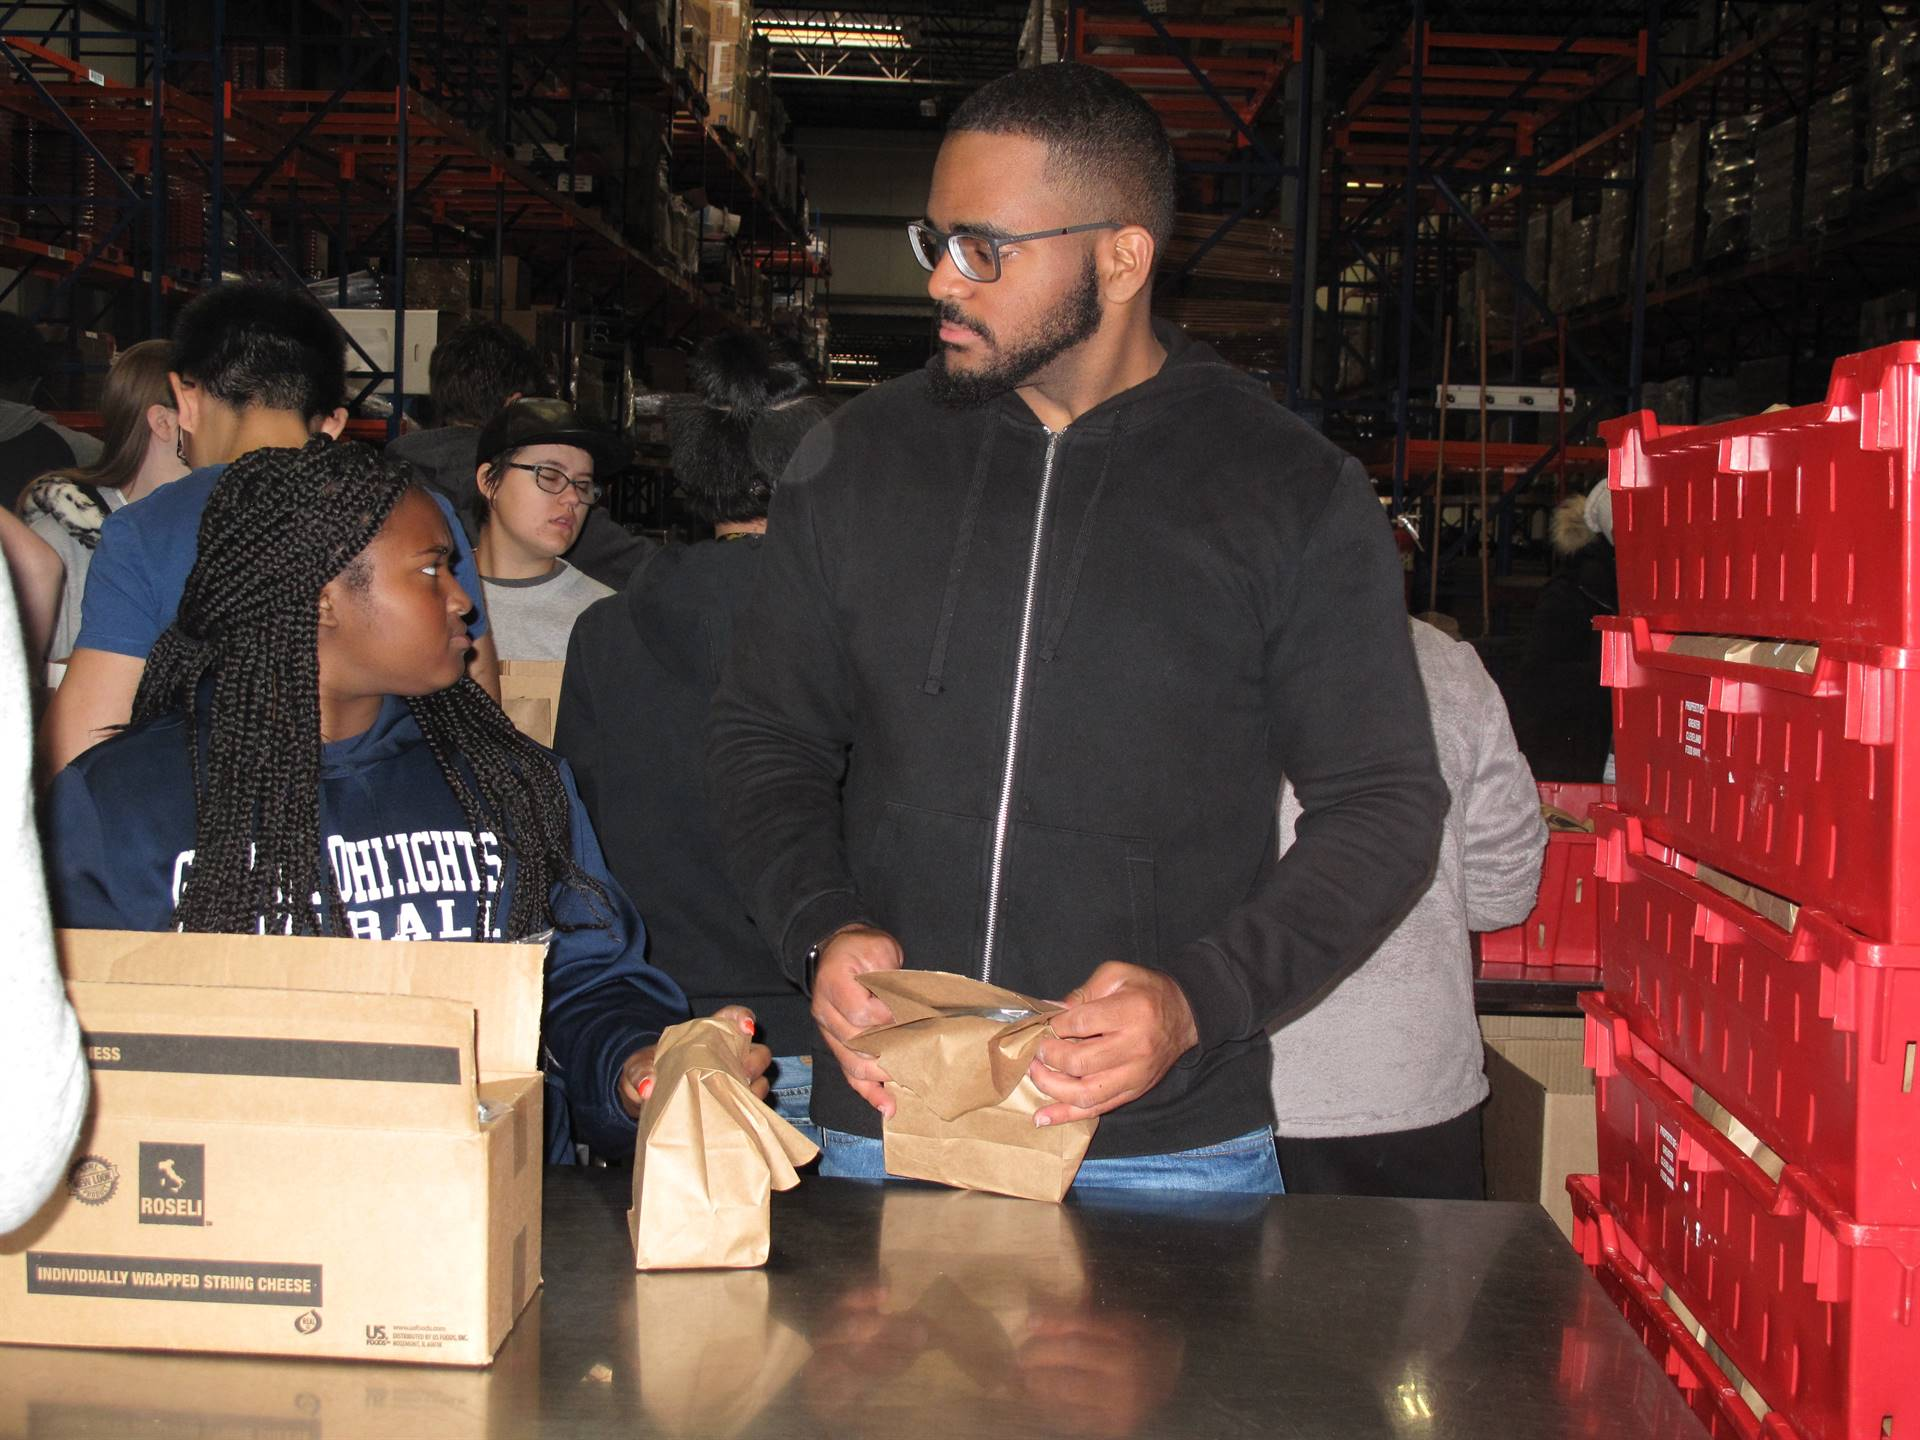 students stacking food boxes